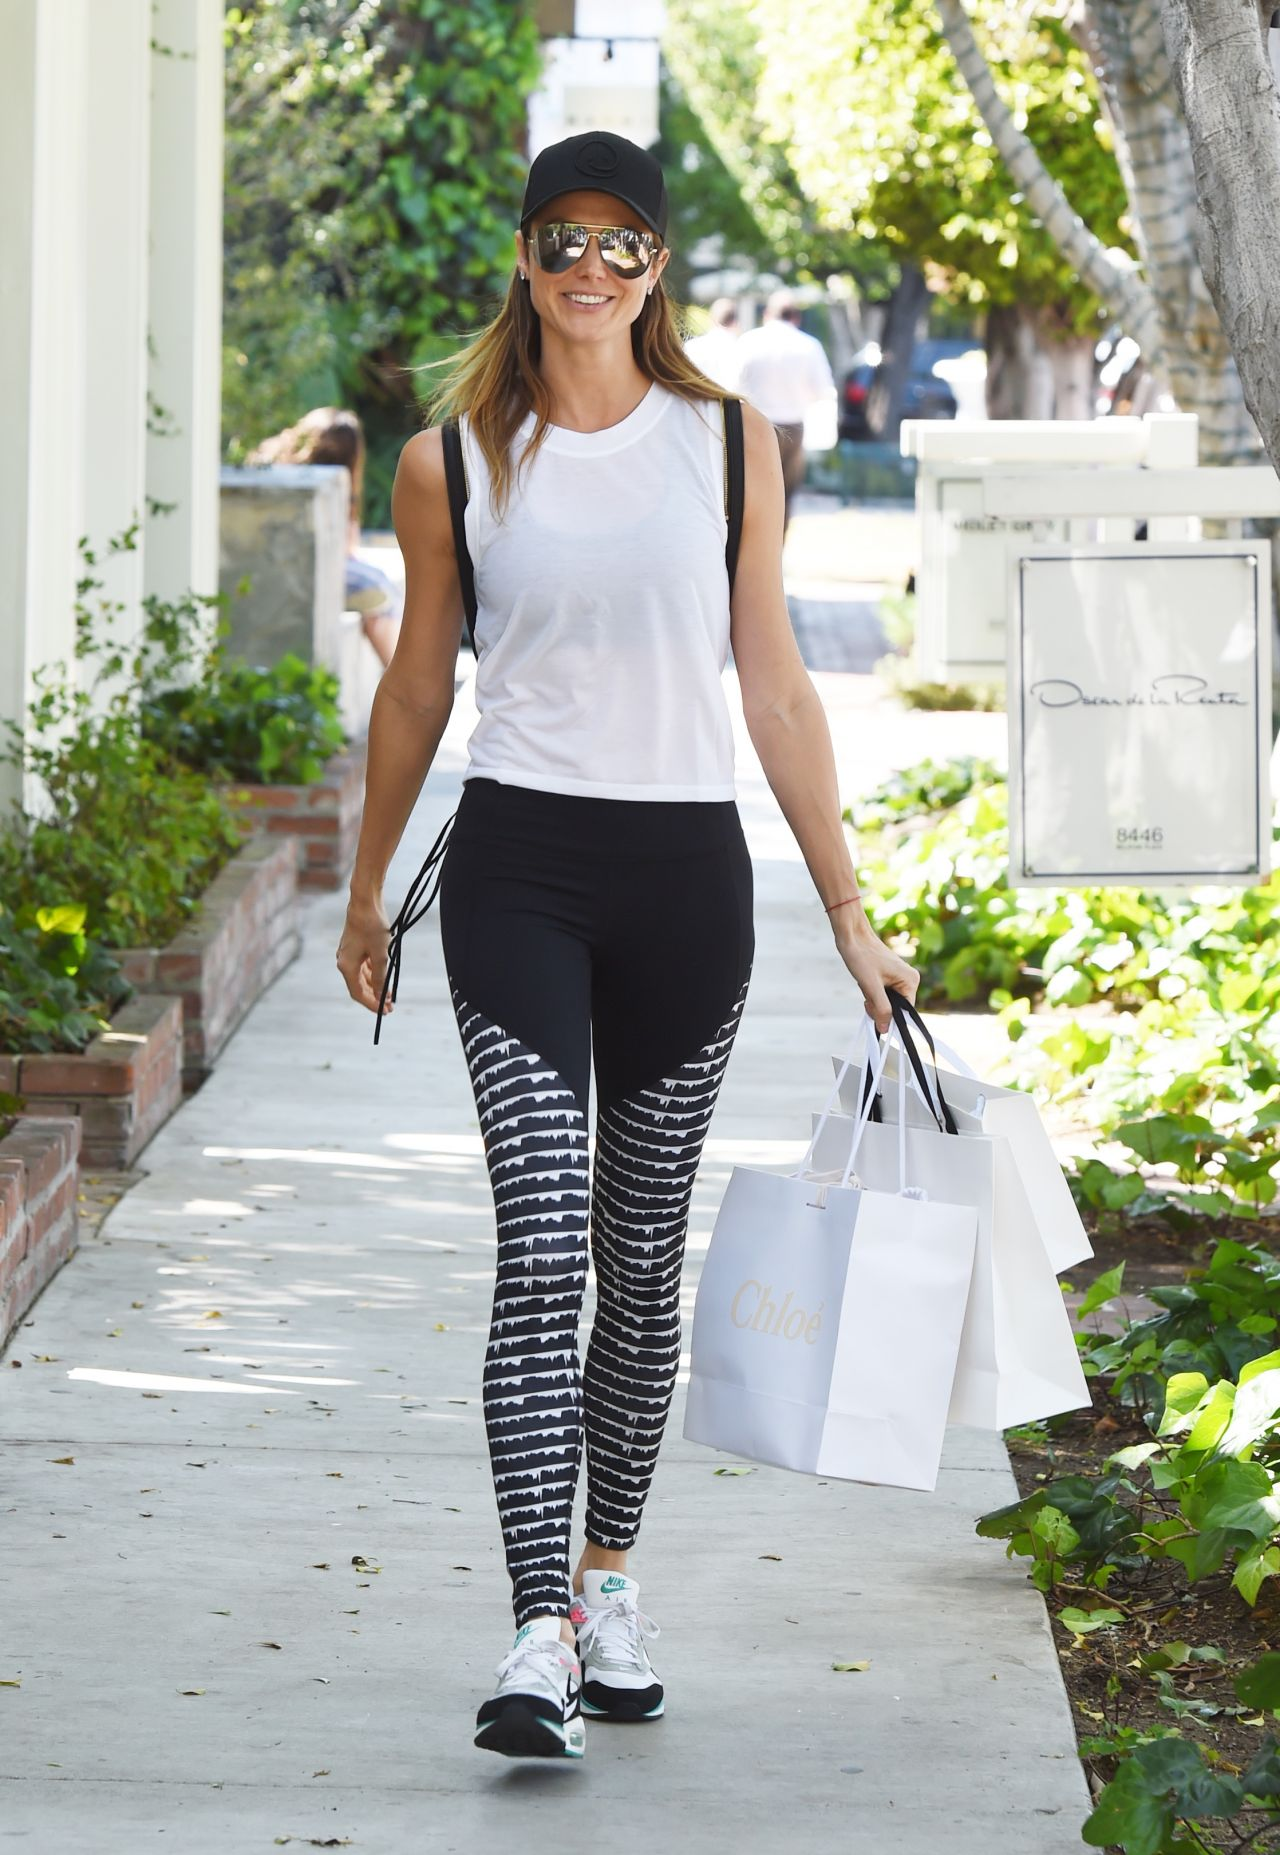 Stacy Keibler Shopping At The Zimmerman Store In Gym